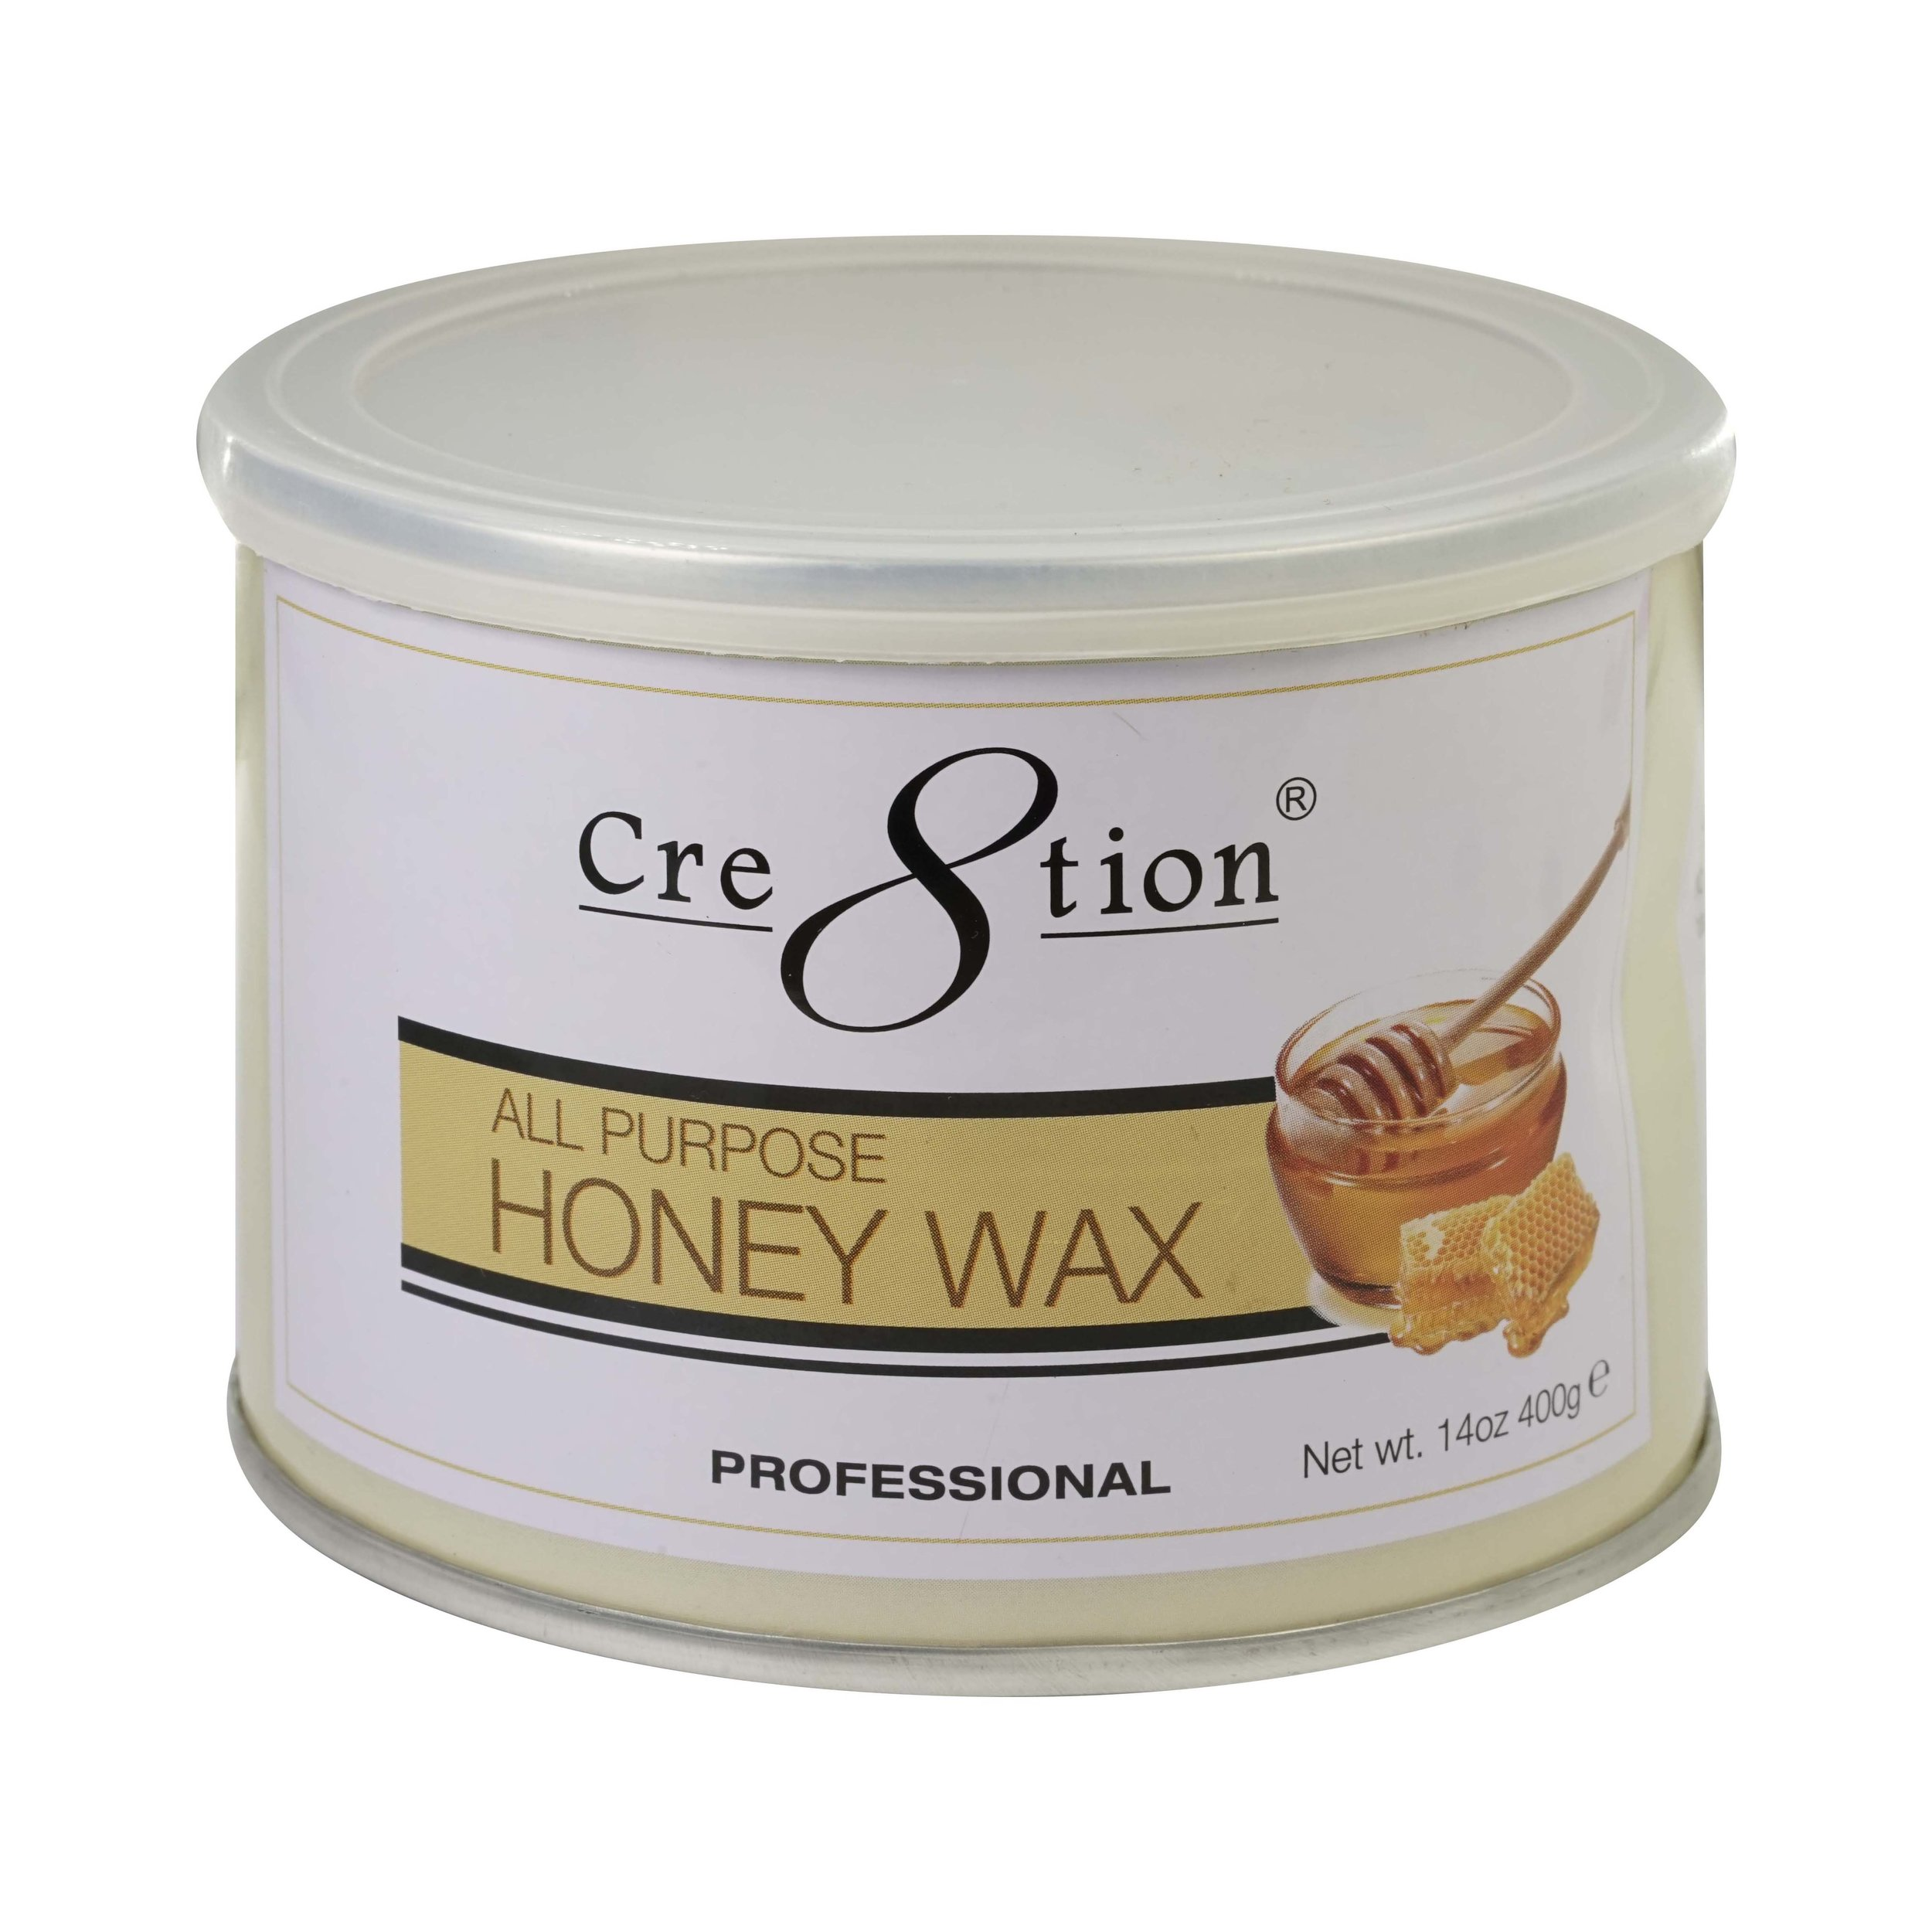 21134 - Honey wax 14oz  24 pcs./case, 72 cases/pallet